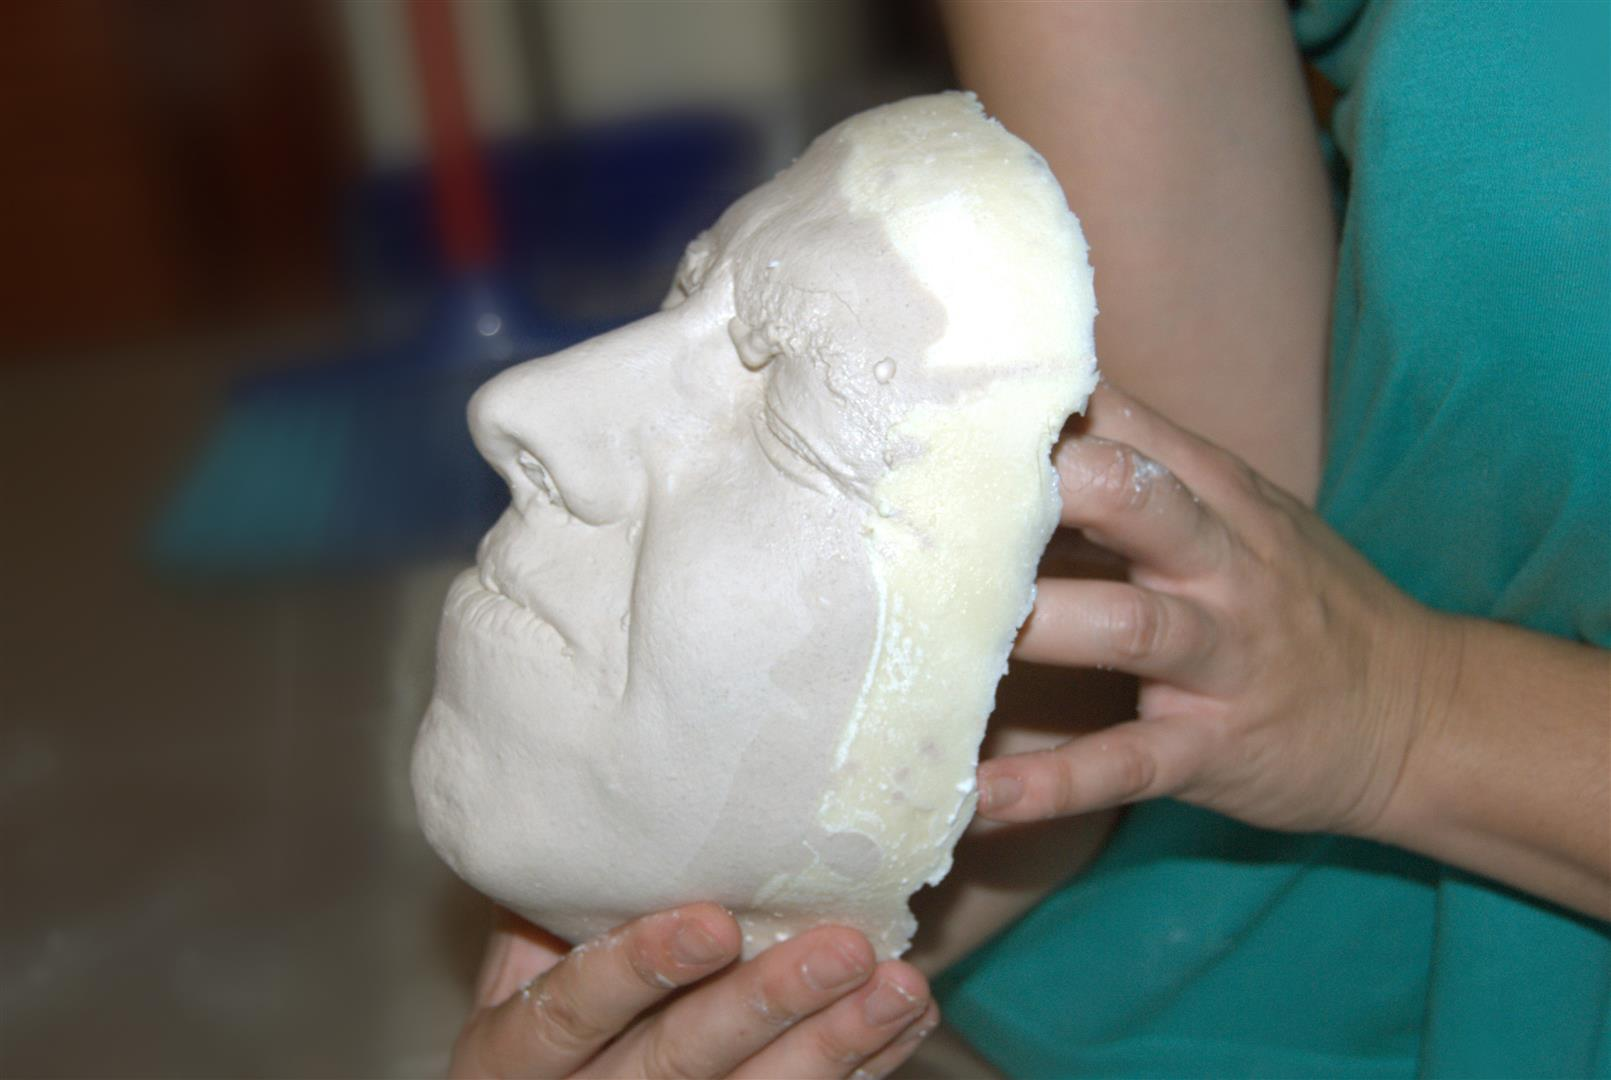 Molde cara, alginato, escayola. face mould, alginate, plaster.